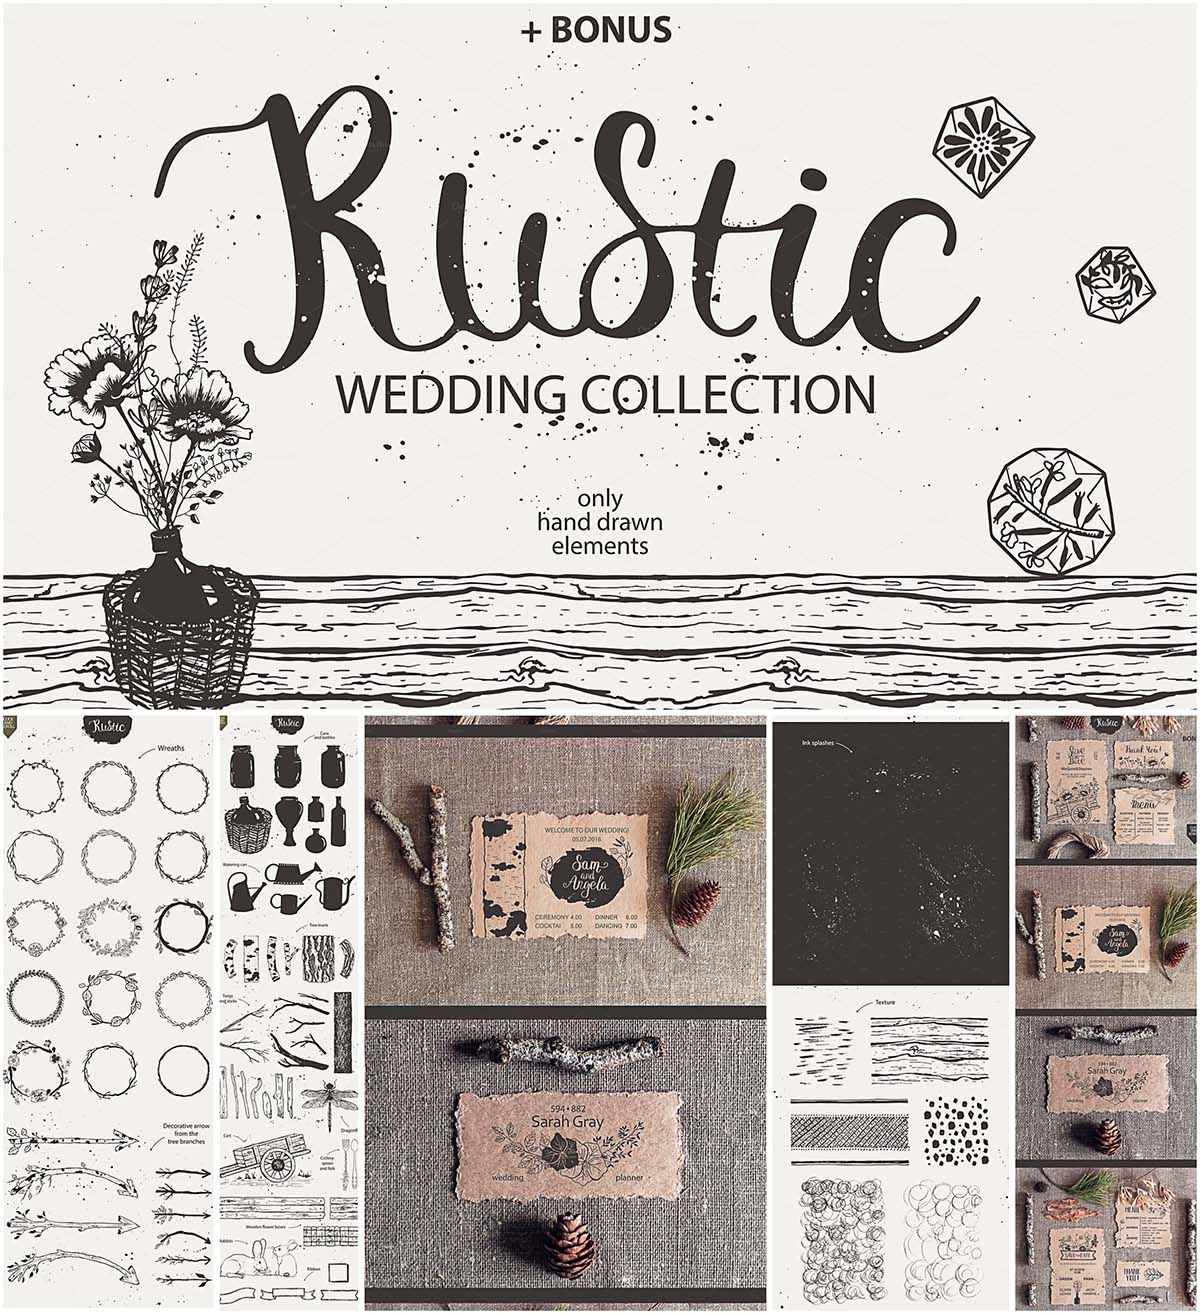 Wedding Rustic Elements Collection Free Download